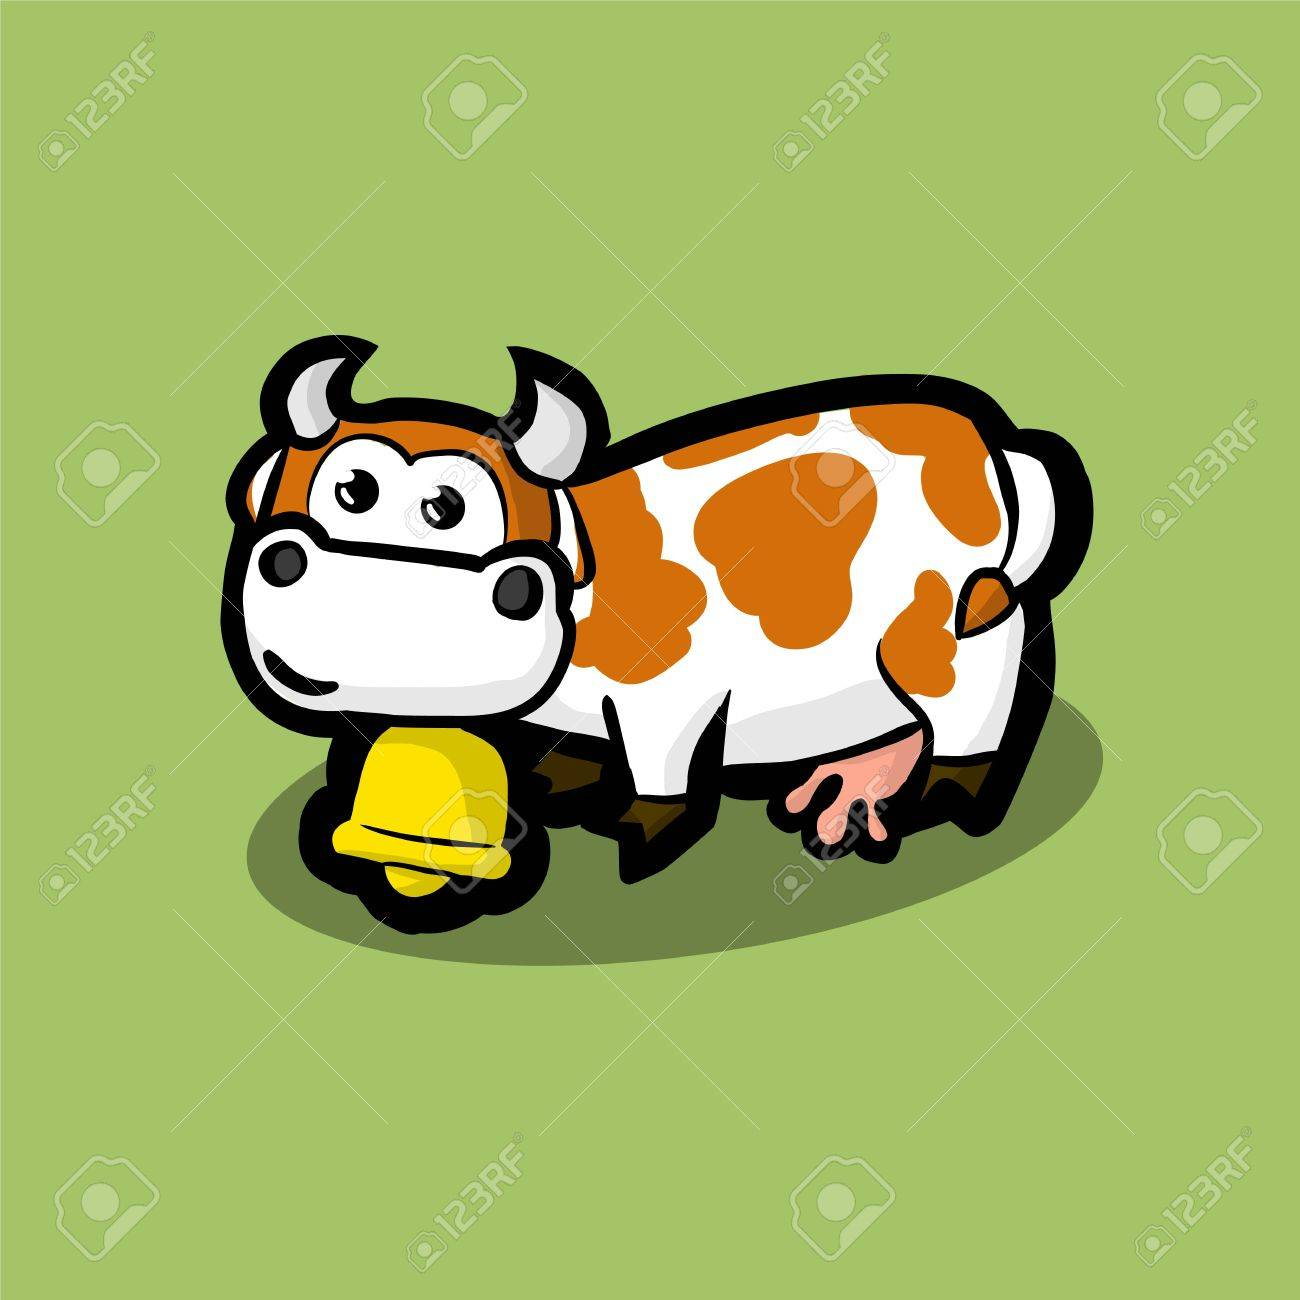 cute cow with a golden bell around on neck on a green meadow. White cow with red spots on her side. Illustration Vector - 69425017